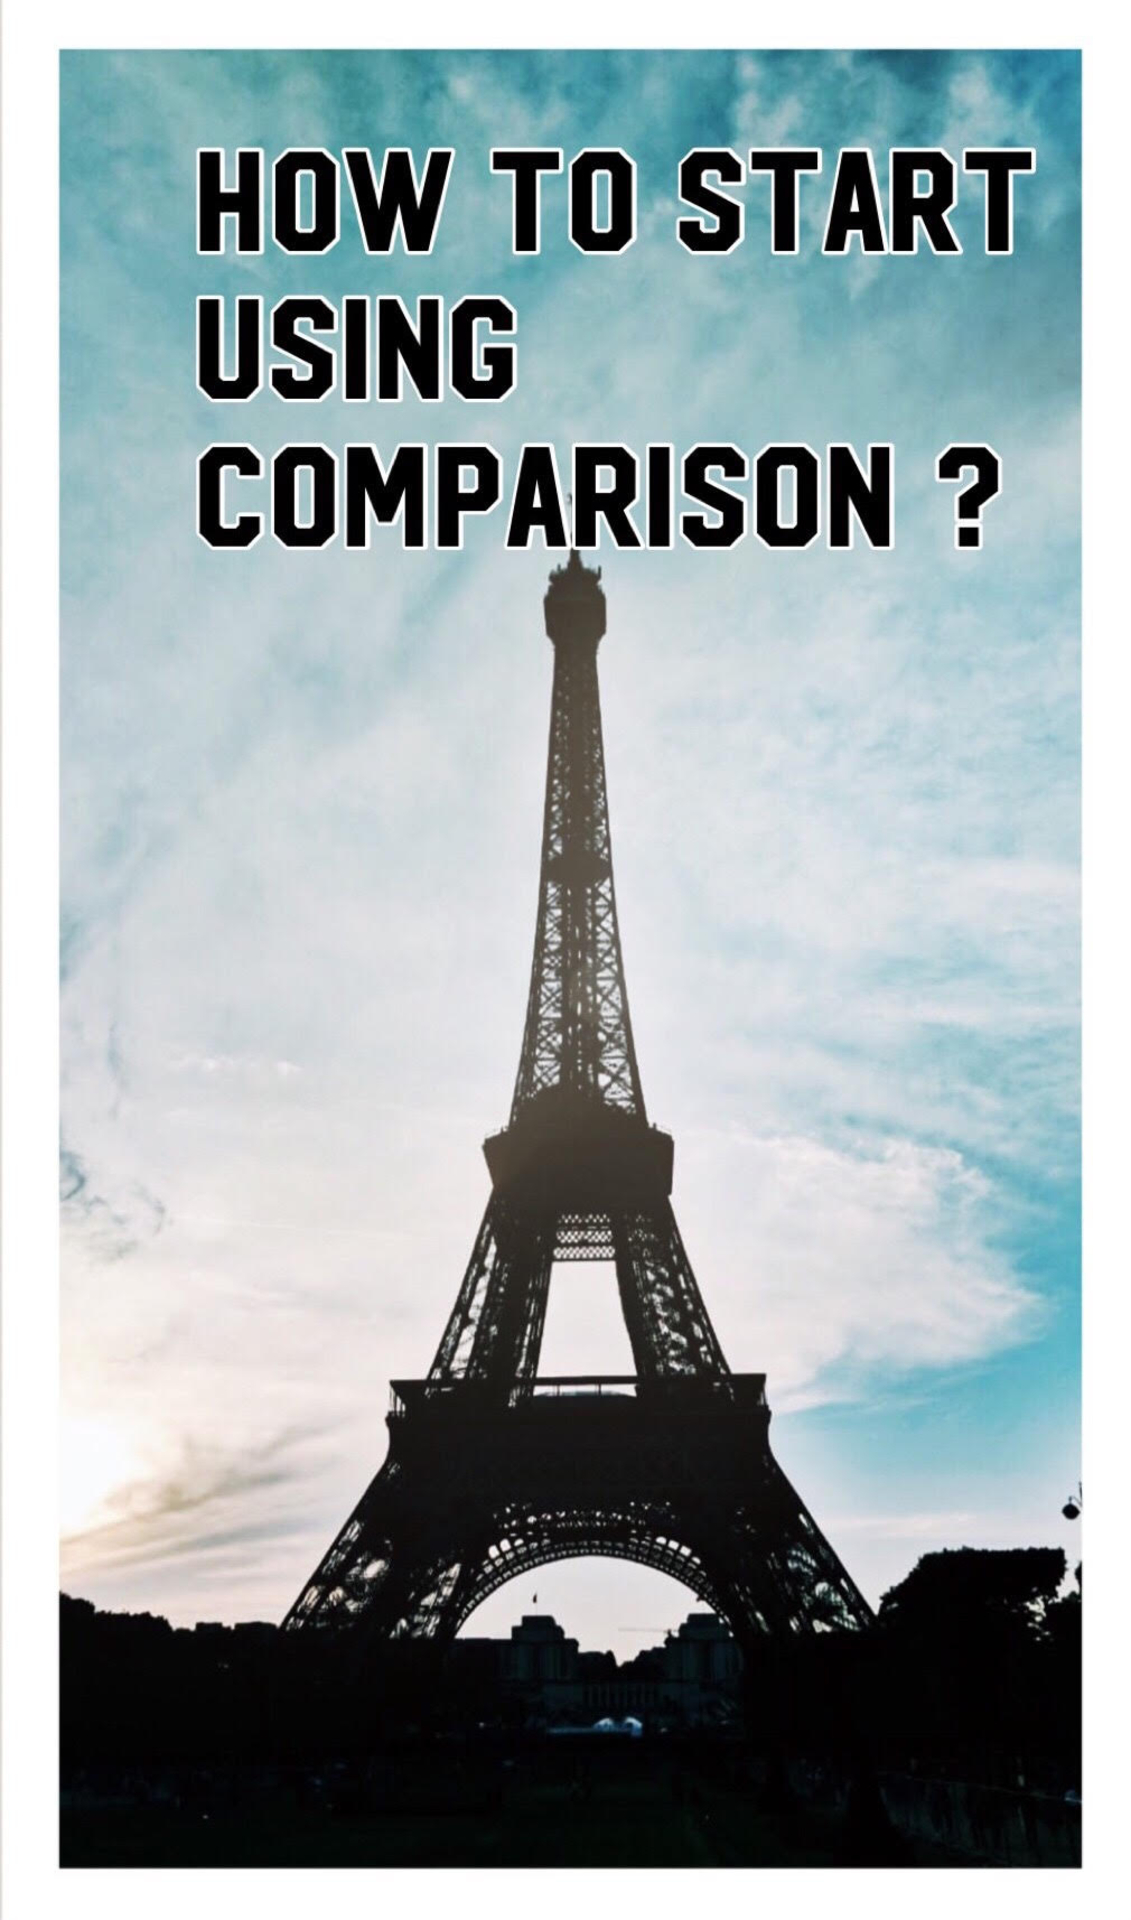 HOW TO START USING COMPARISON! image